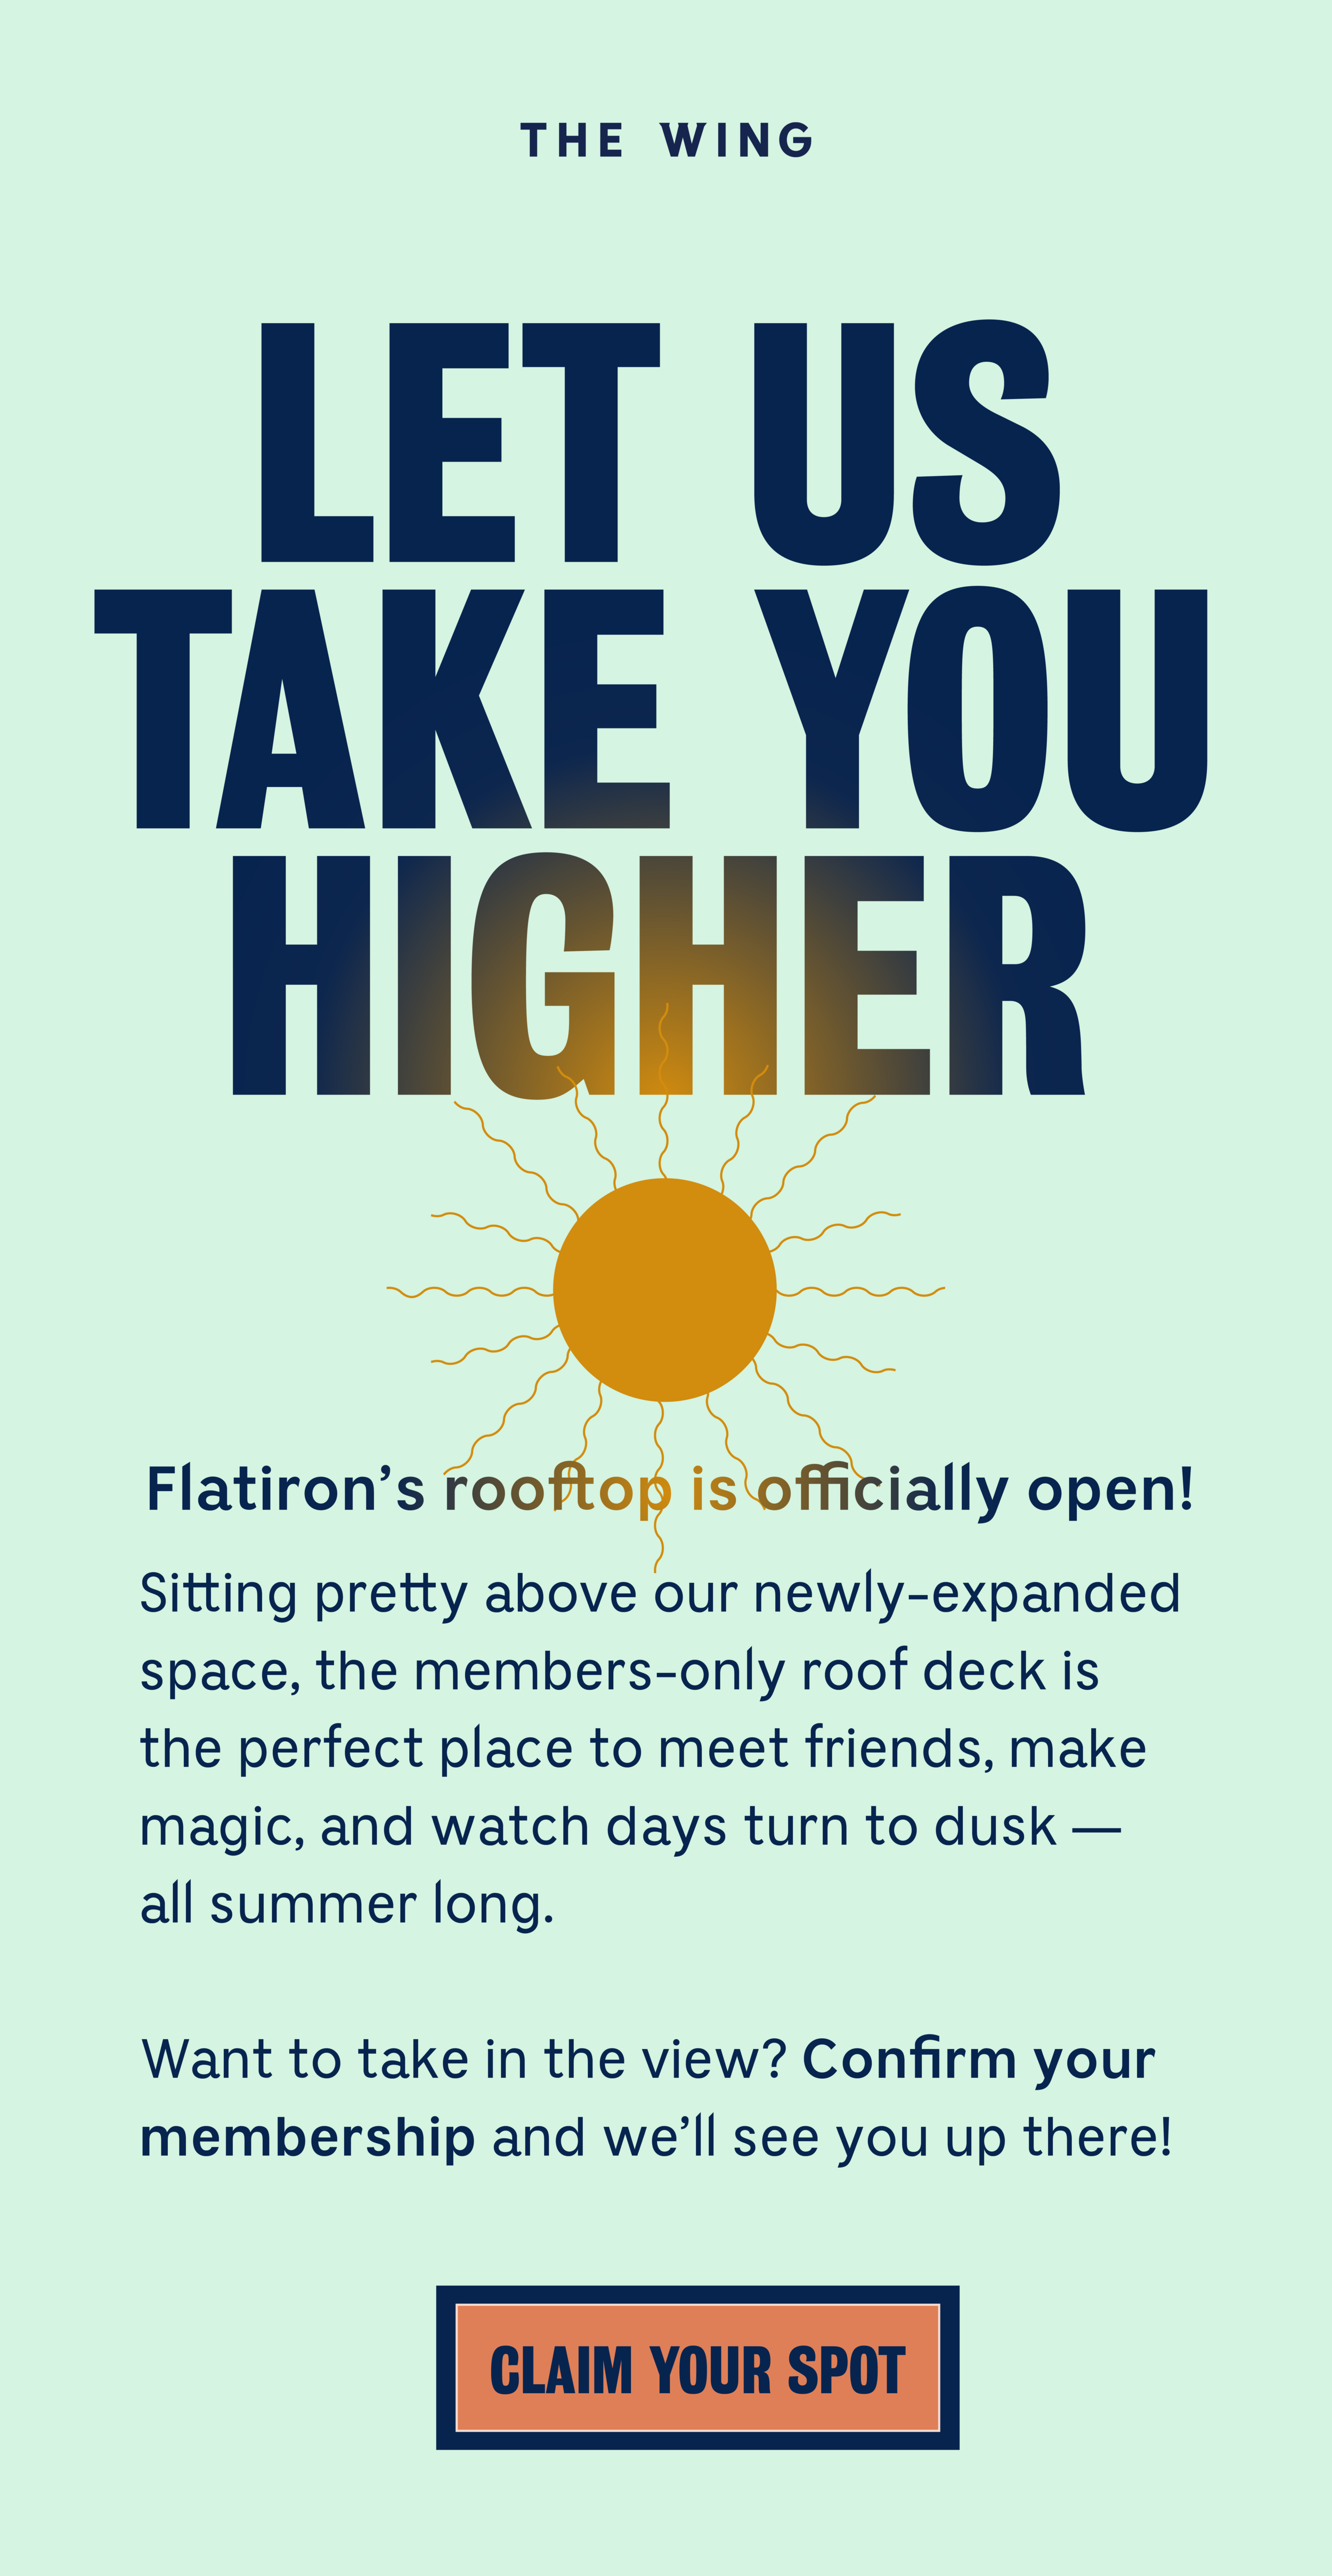 ECOMM_FLATIRON_ROOFOPENING_2019_NON_CONVETERS.png